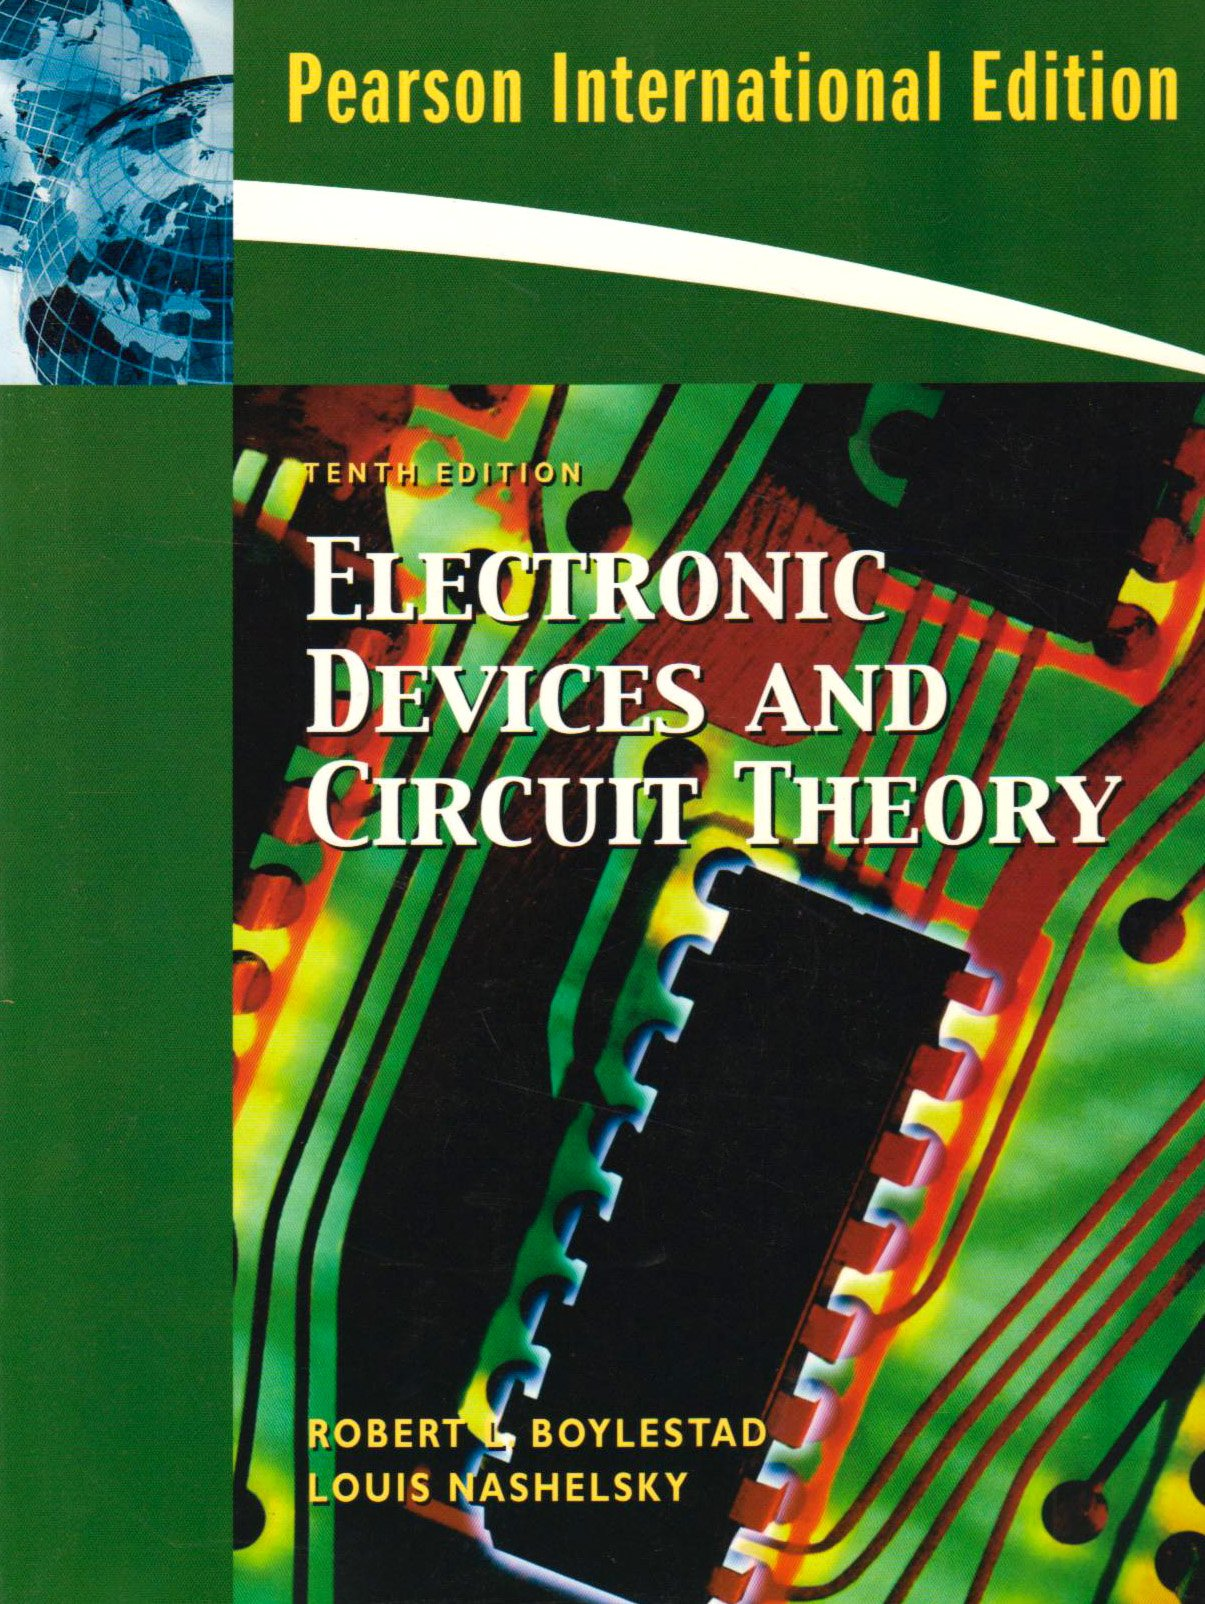 Electronic devices and circuit theory 11th edition solutions studocu.